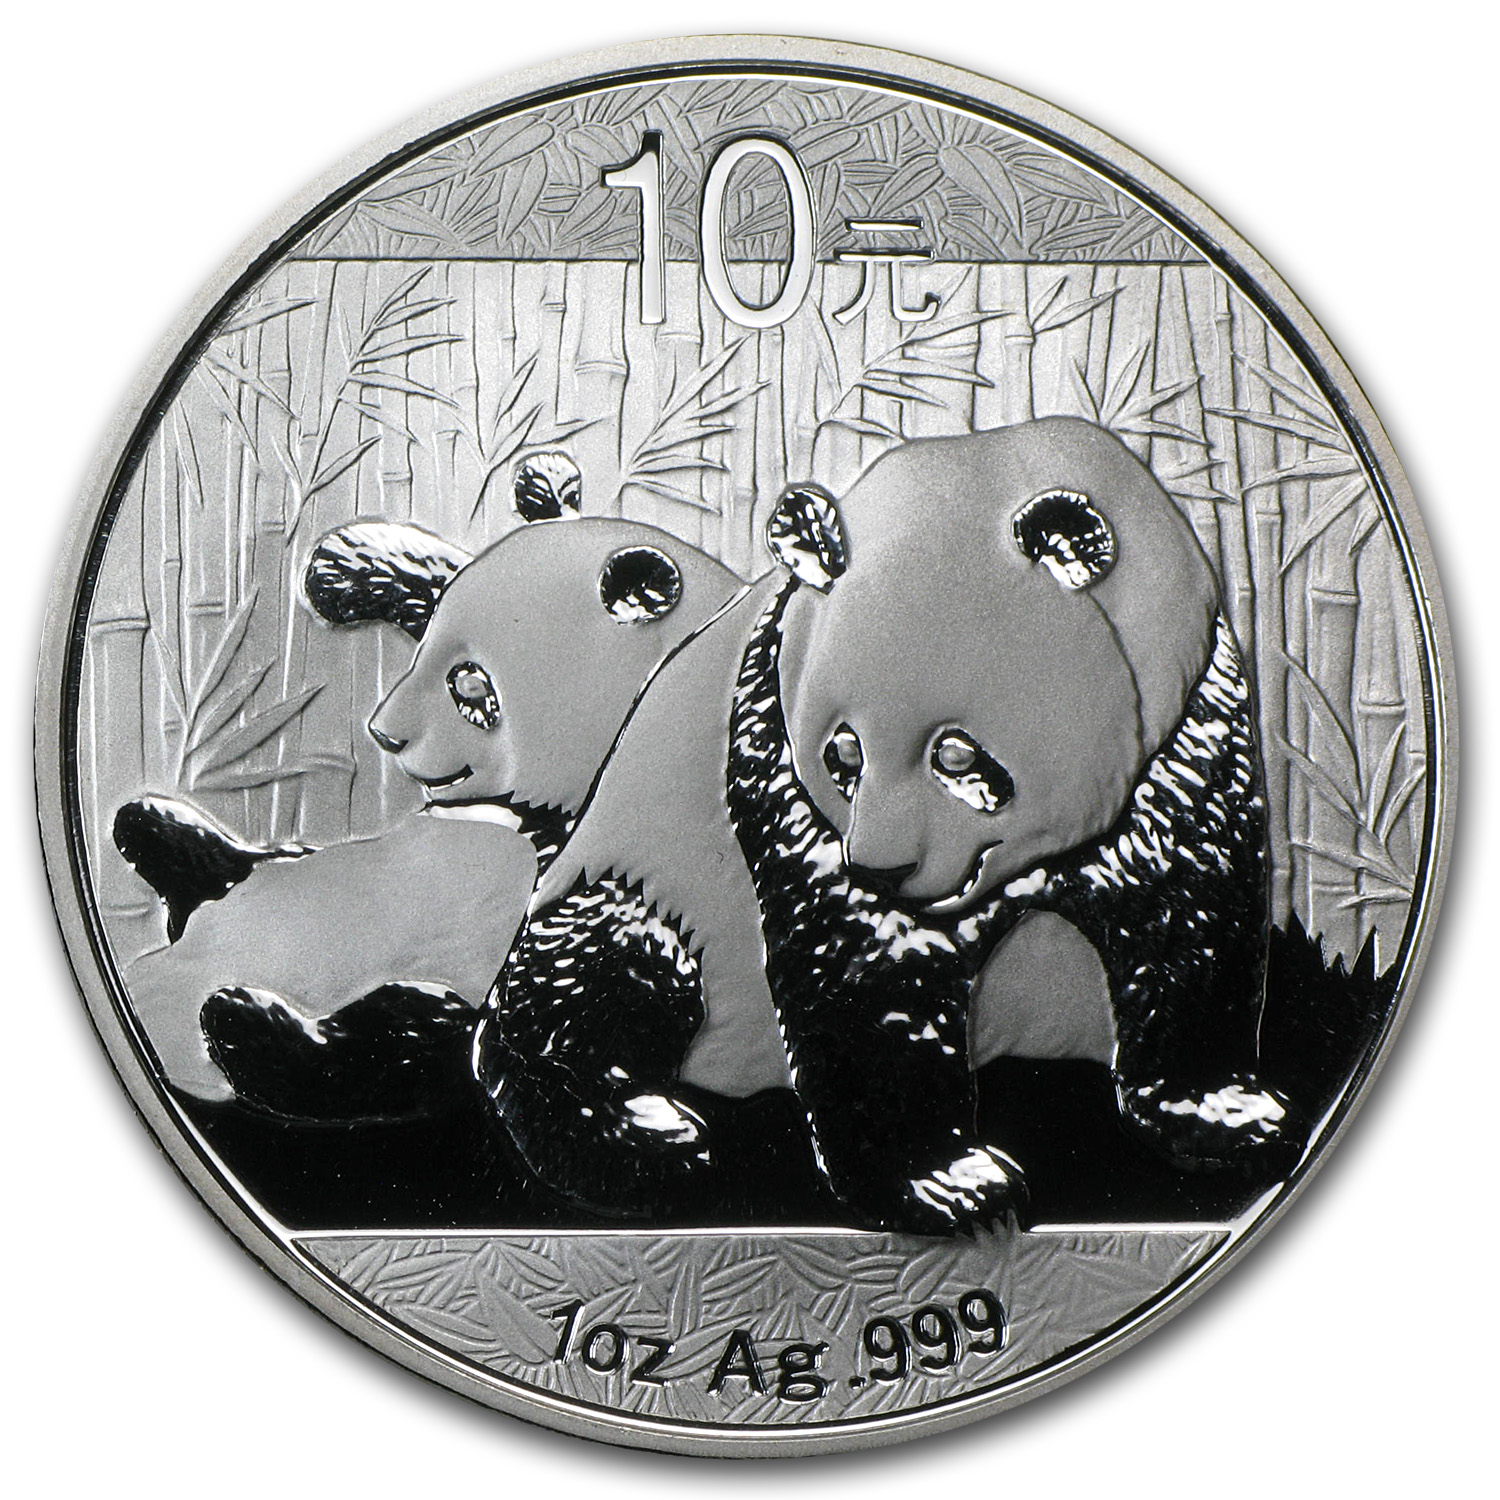 2010 China 1 oz Silver Panda BU (In Capsule)